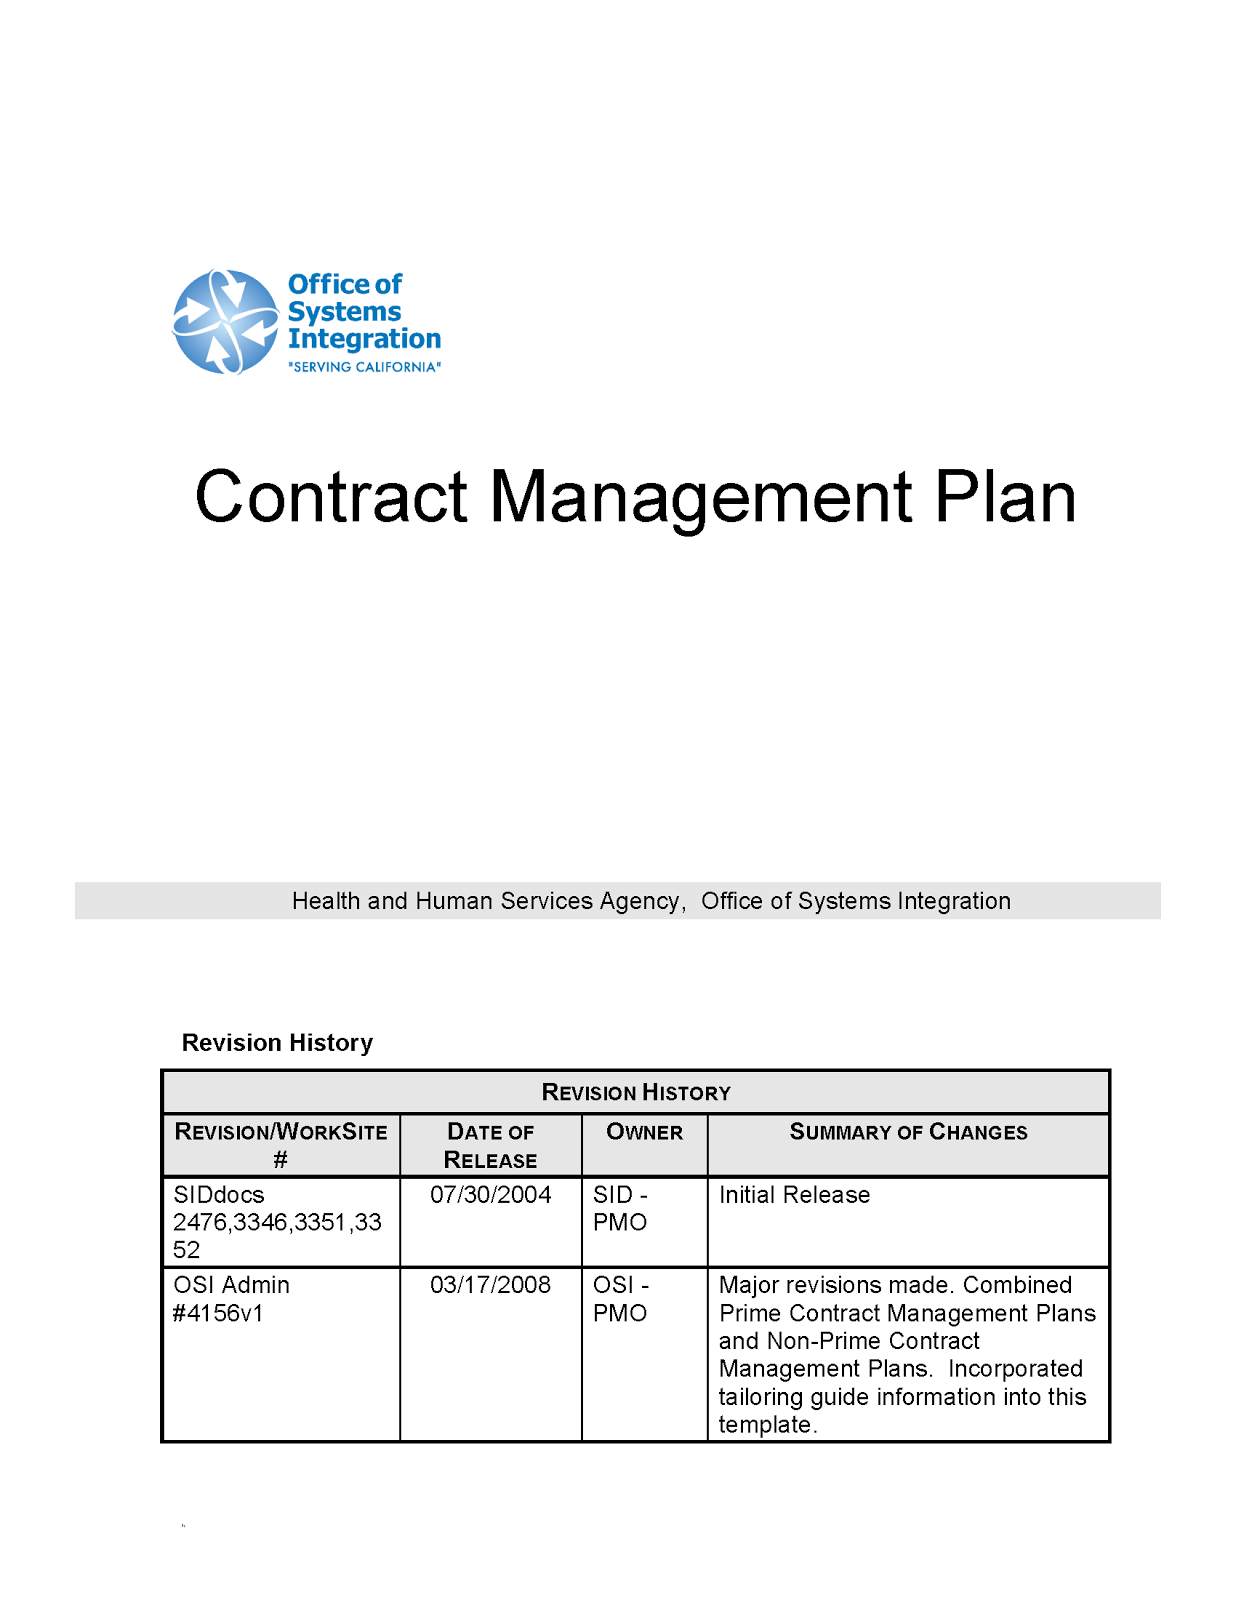 the purpose of contract management is to ensure the contractor is adhering to the terms and conditions of the contract and providing the required